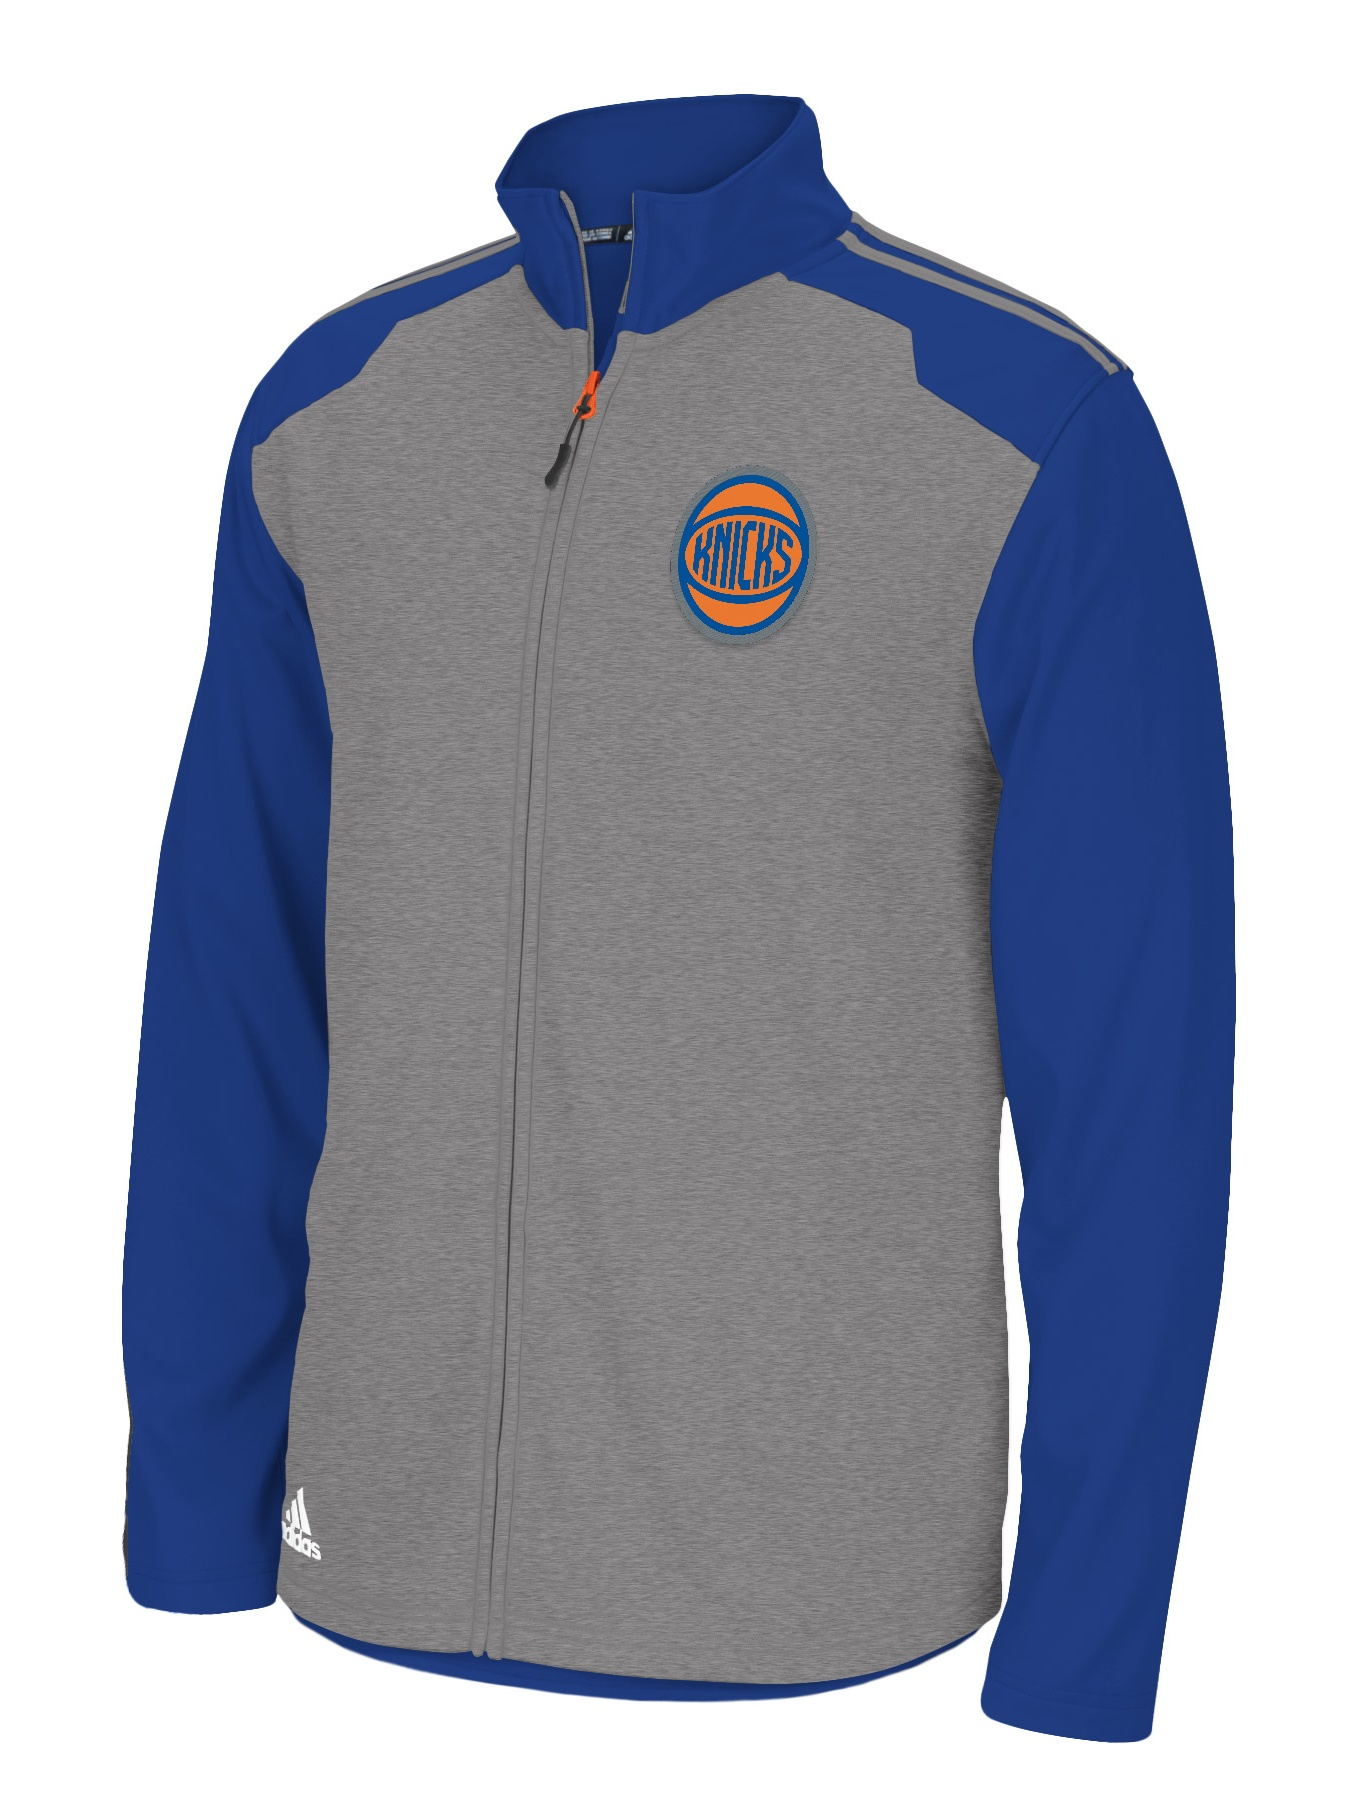 New York Knicks Adidas 2014 NBA Climawarm Full Zip Men's Fleece Jacket by Adidas